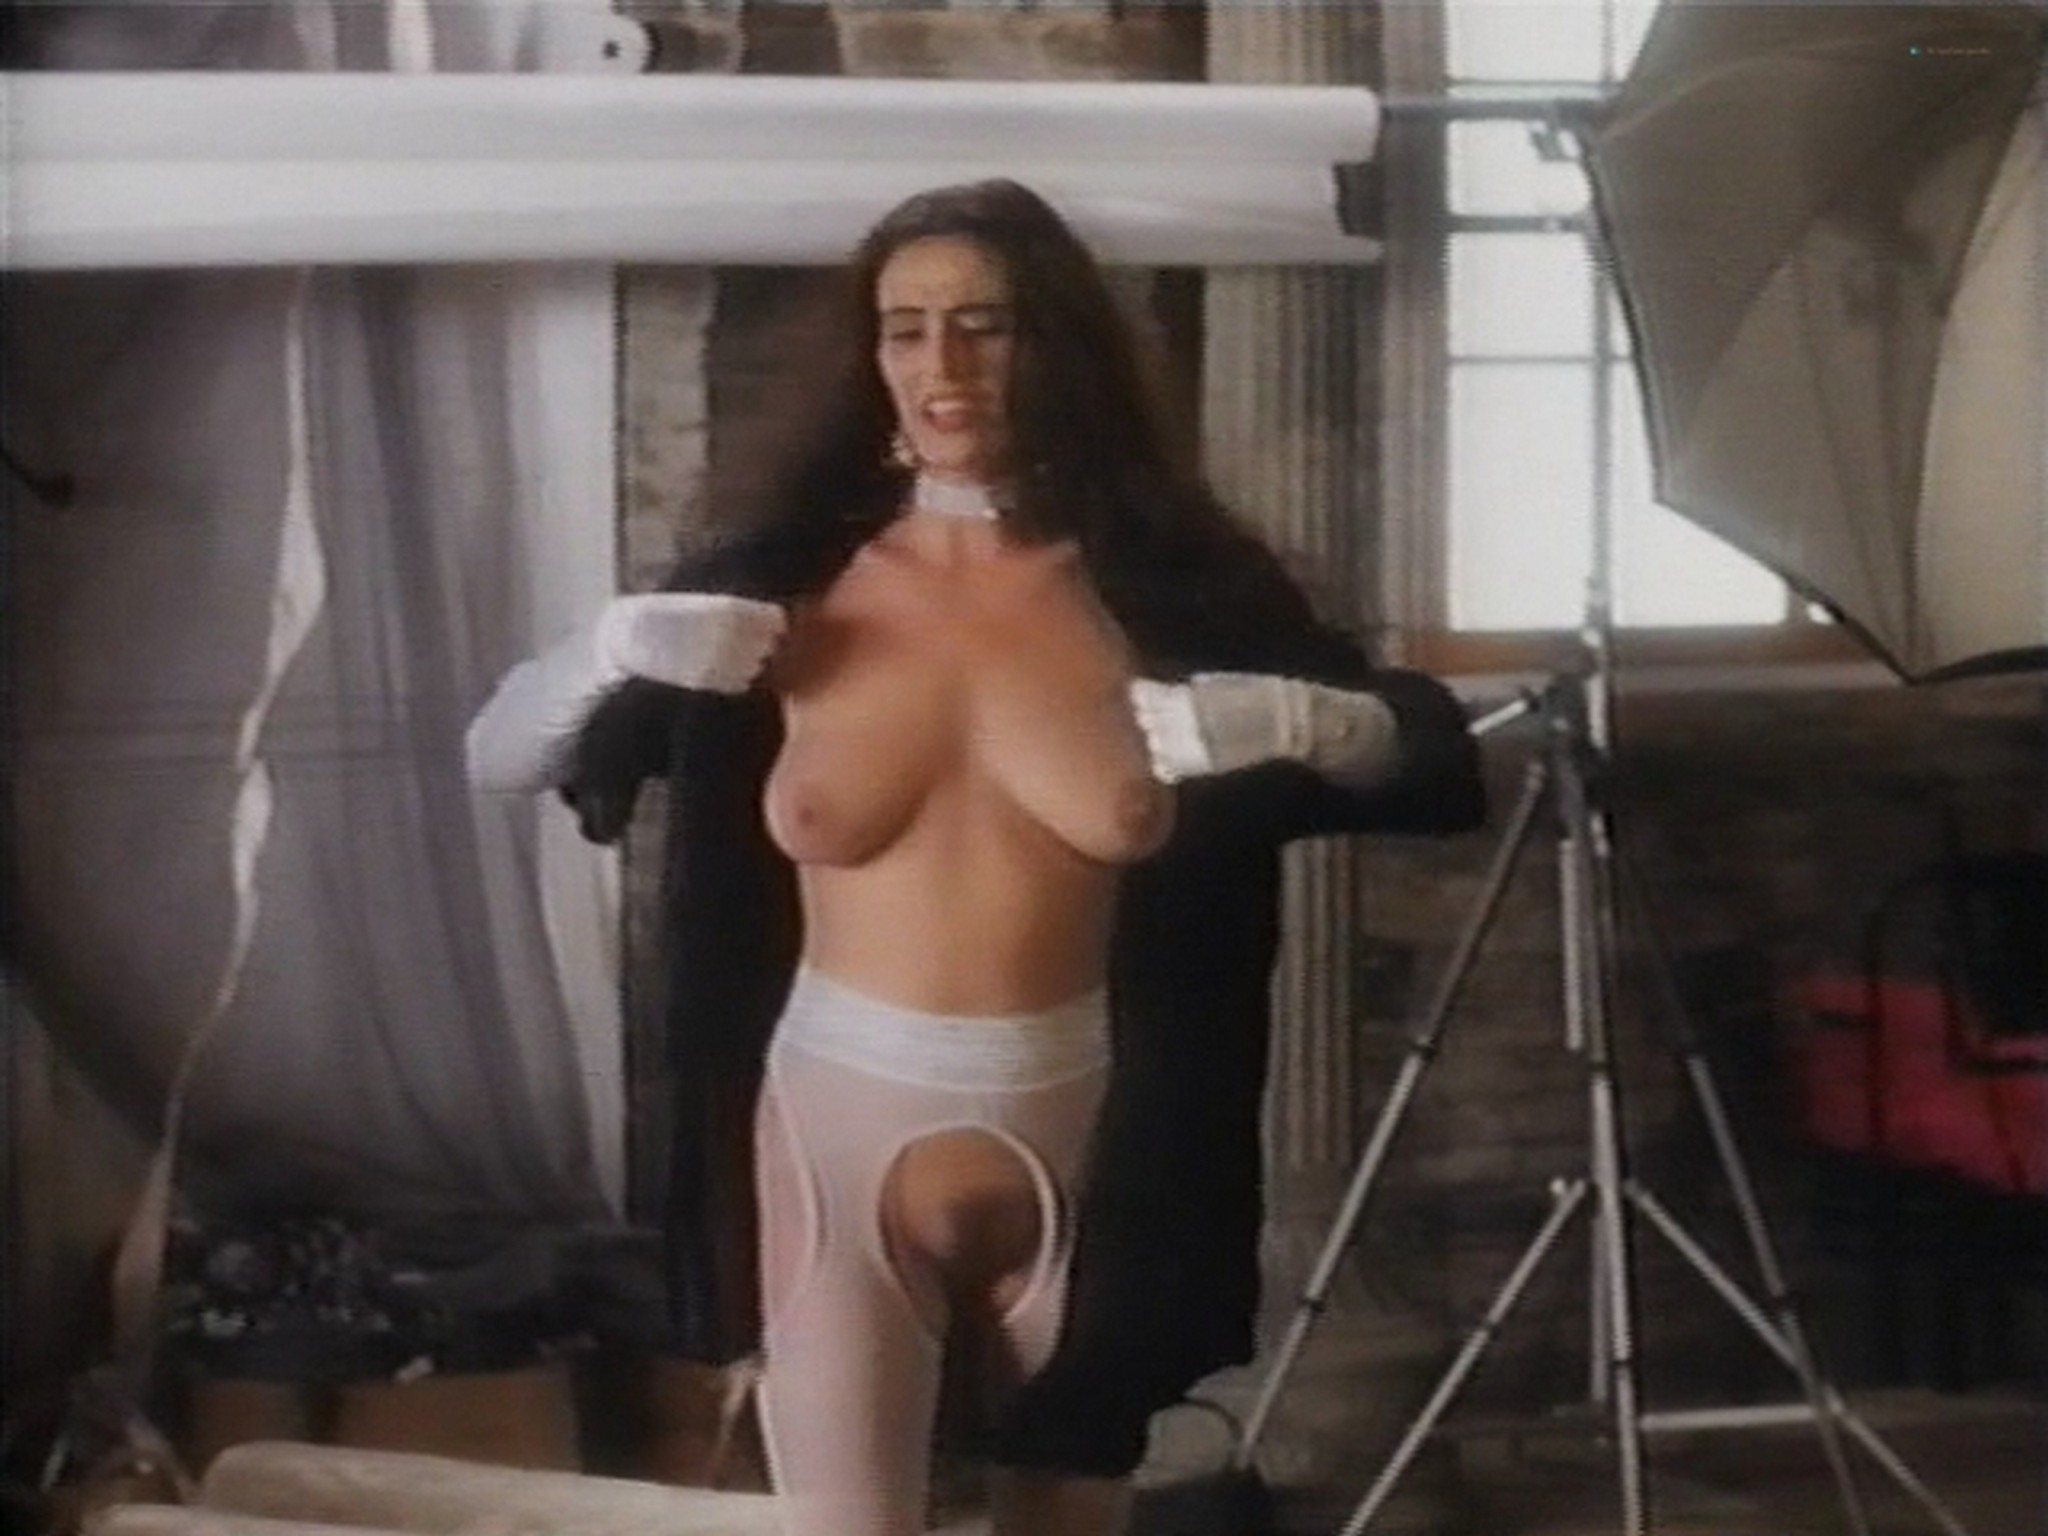 Shannon Whirry nude Elizabeth Sandifer and Shannon McLeod all nude and sex in - Animal Instincts II (1994) (13)